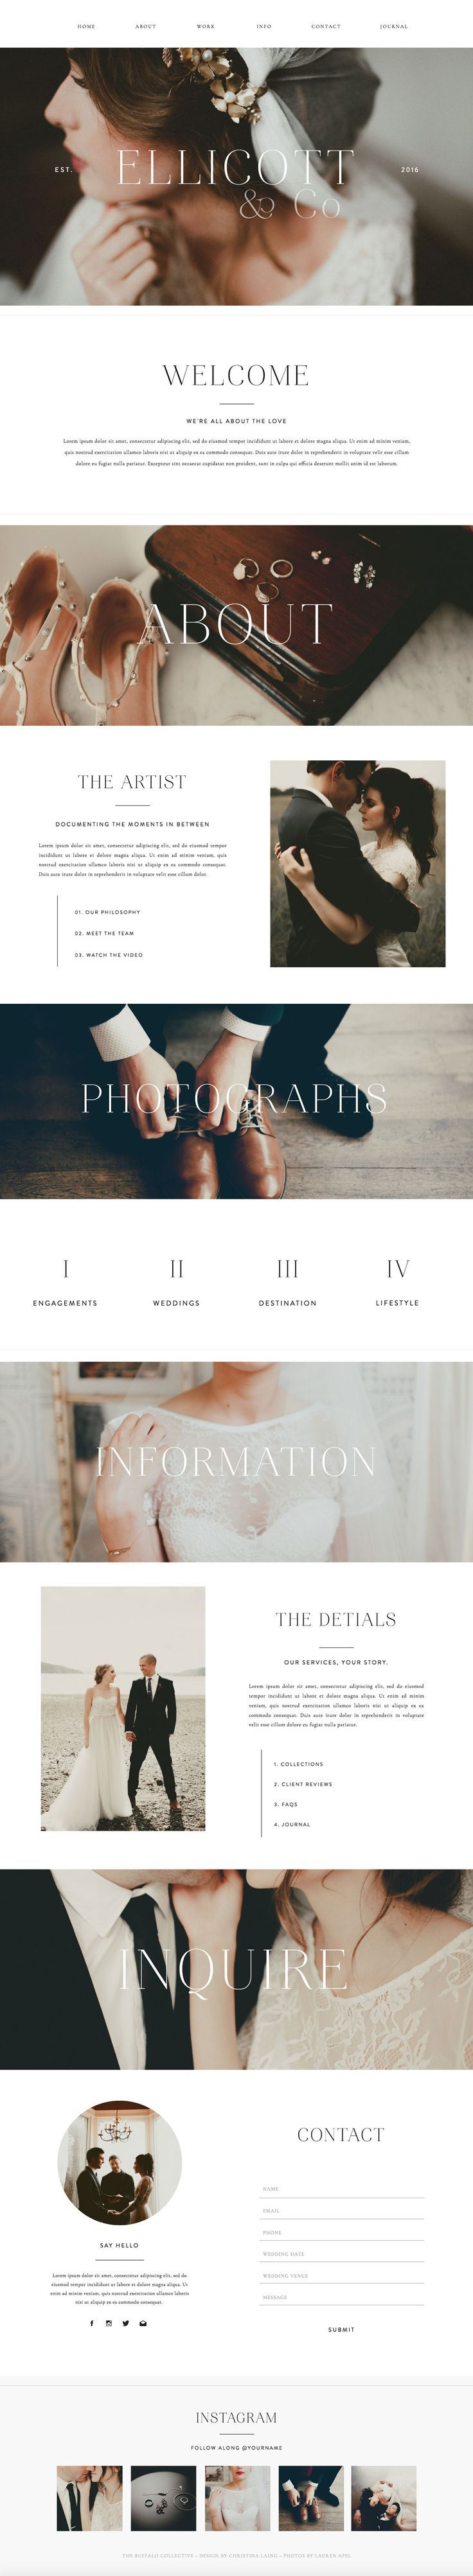 Ellicott - Showit Premium Photography Website Template Design